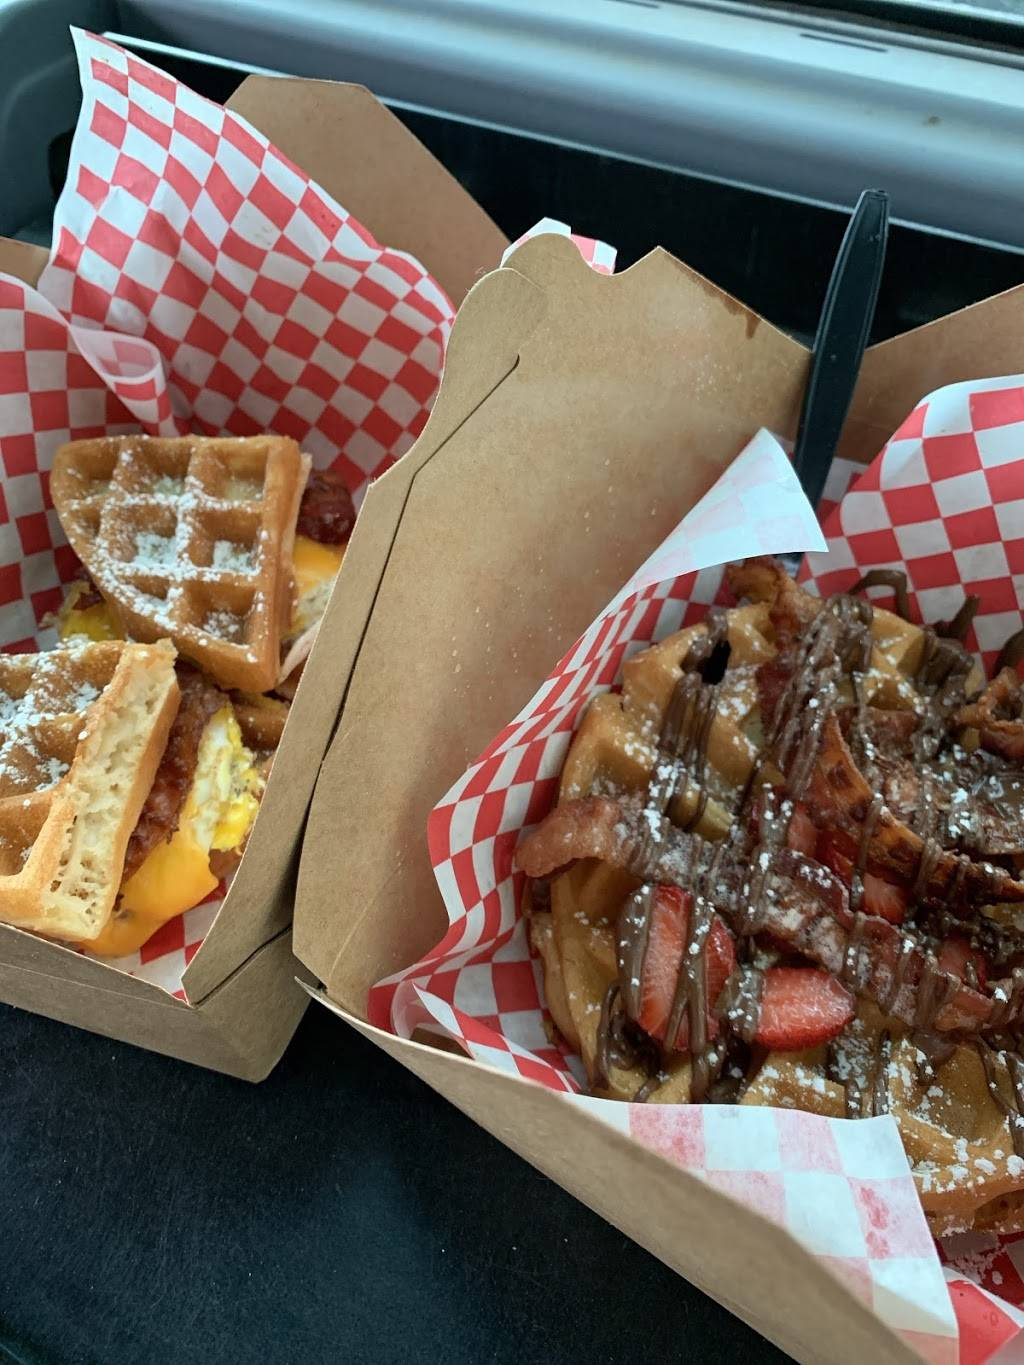 Waffle wagon - restaurant  | Photo 1 of 4 | Address: 4 Mt Vernon St, Ridgefield Park, NJ 07660, USA | Phone: (551) 259-4040